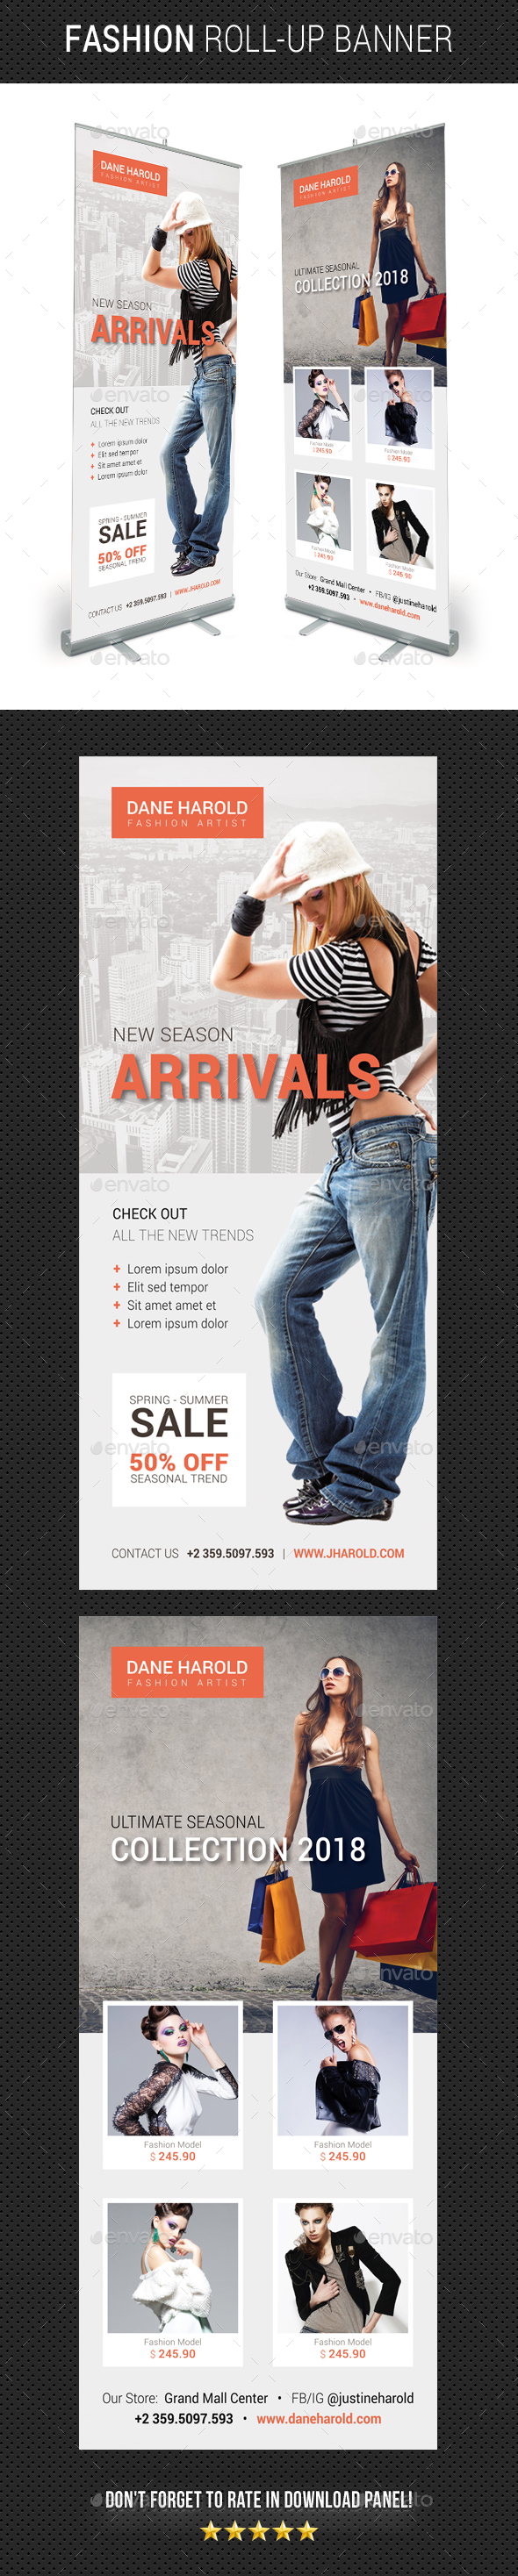 Fashion Roll-Up Banner 06 - Signage Print Templates